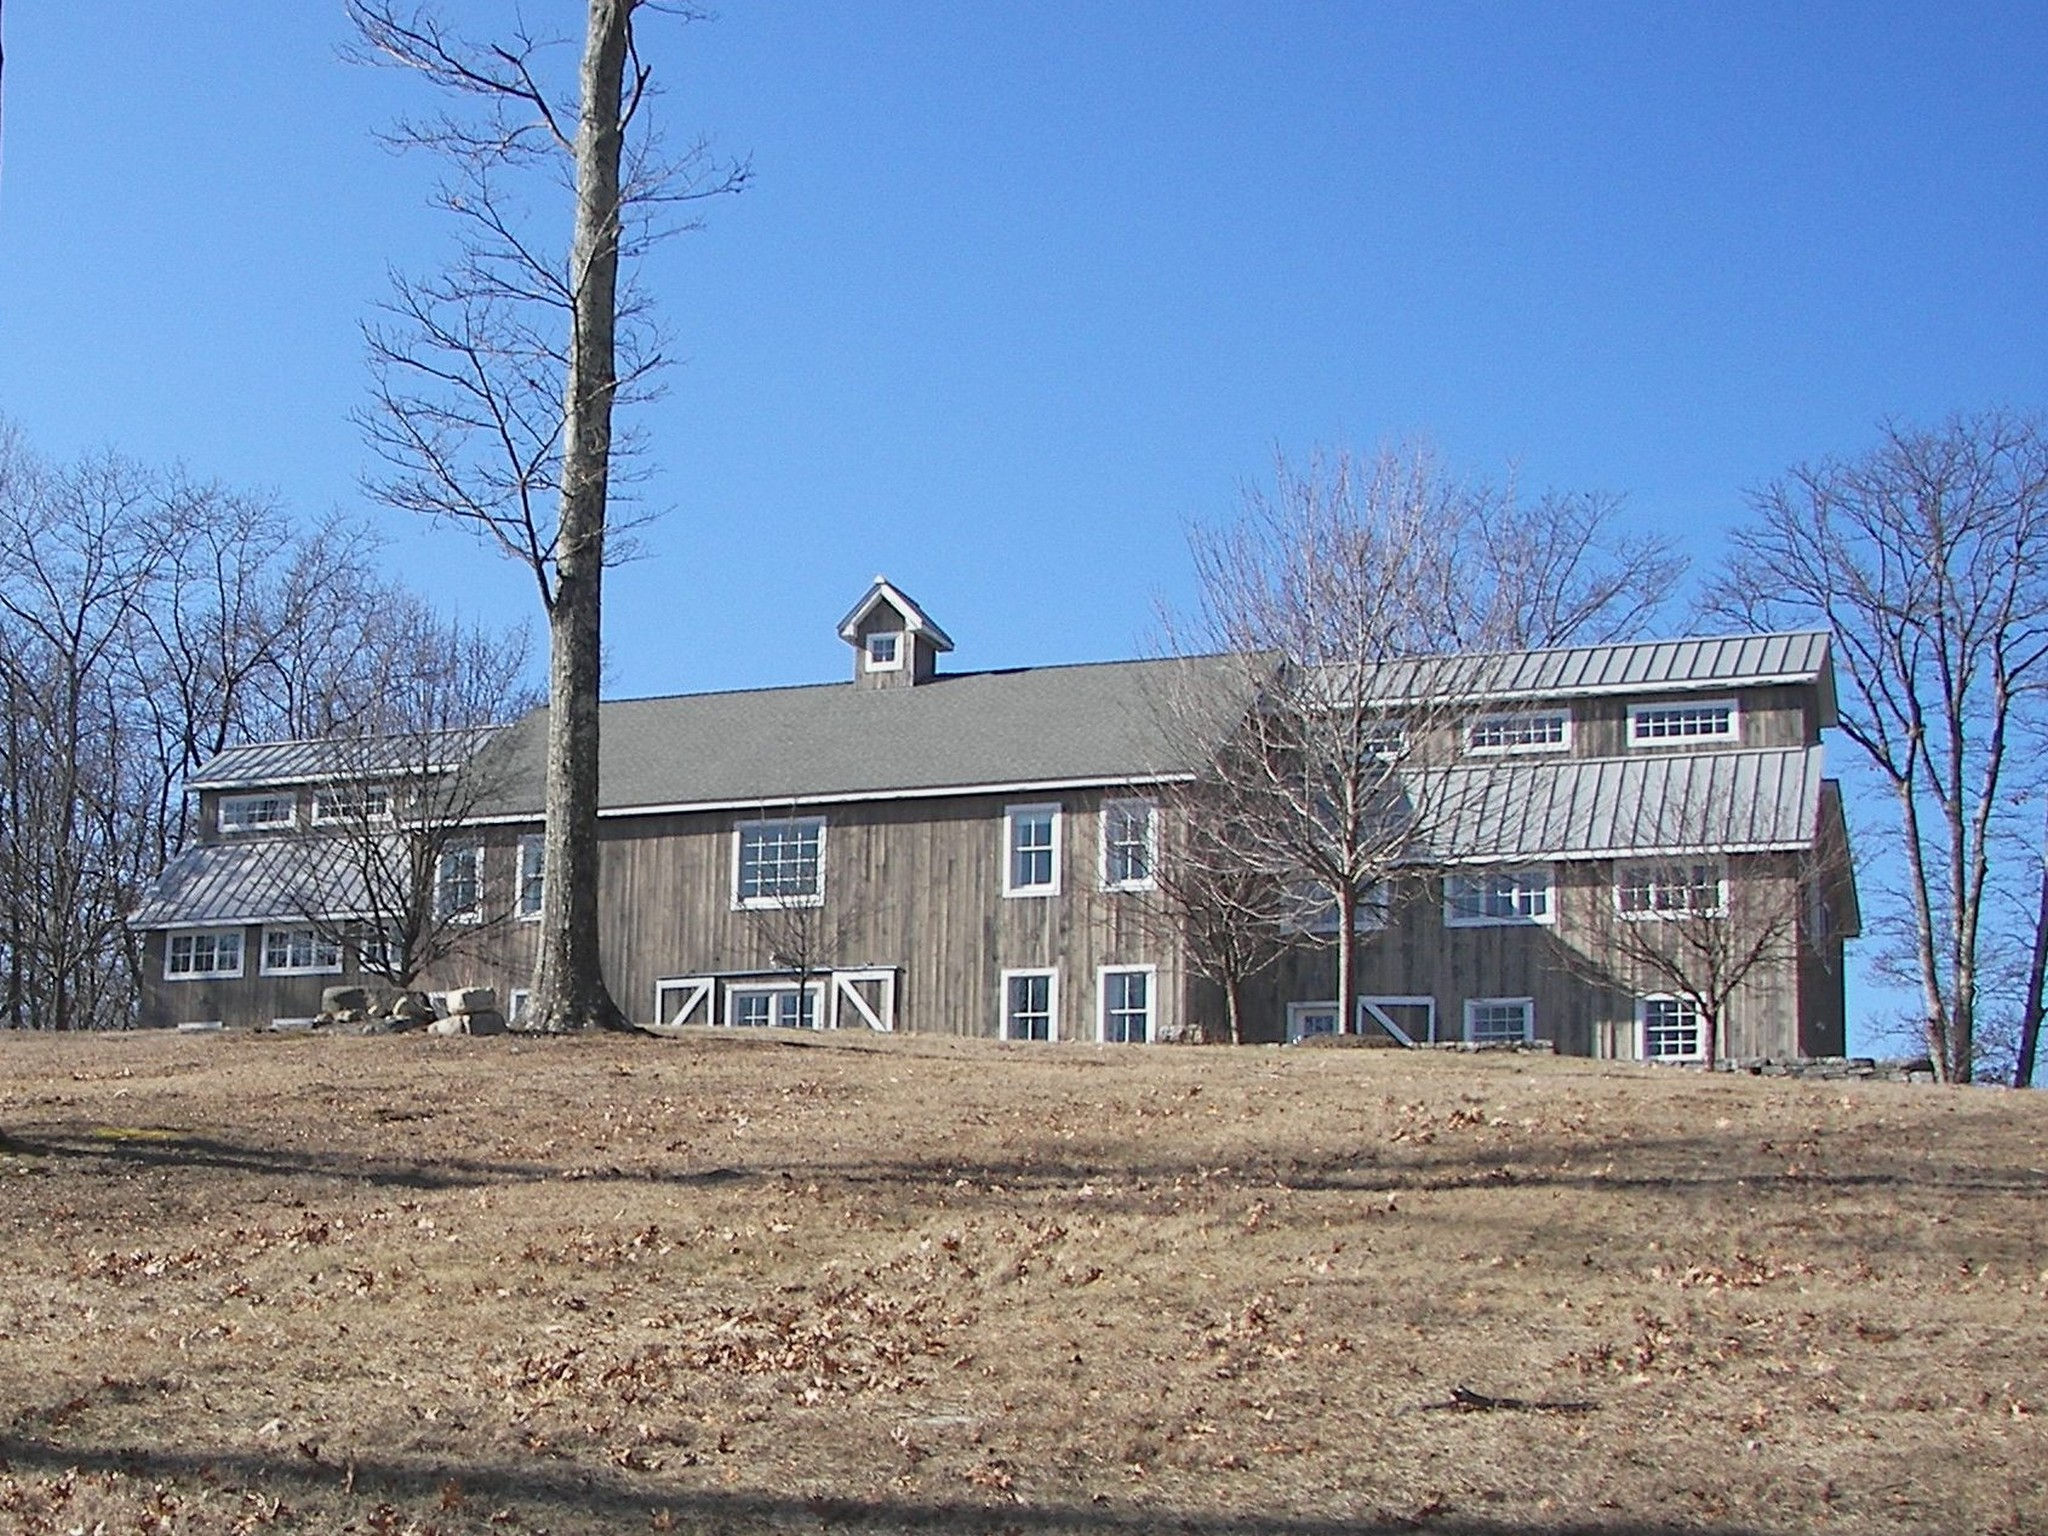 Property For Sale at Gorgeous Barn Stye Home